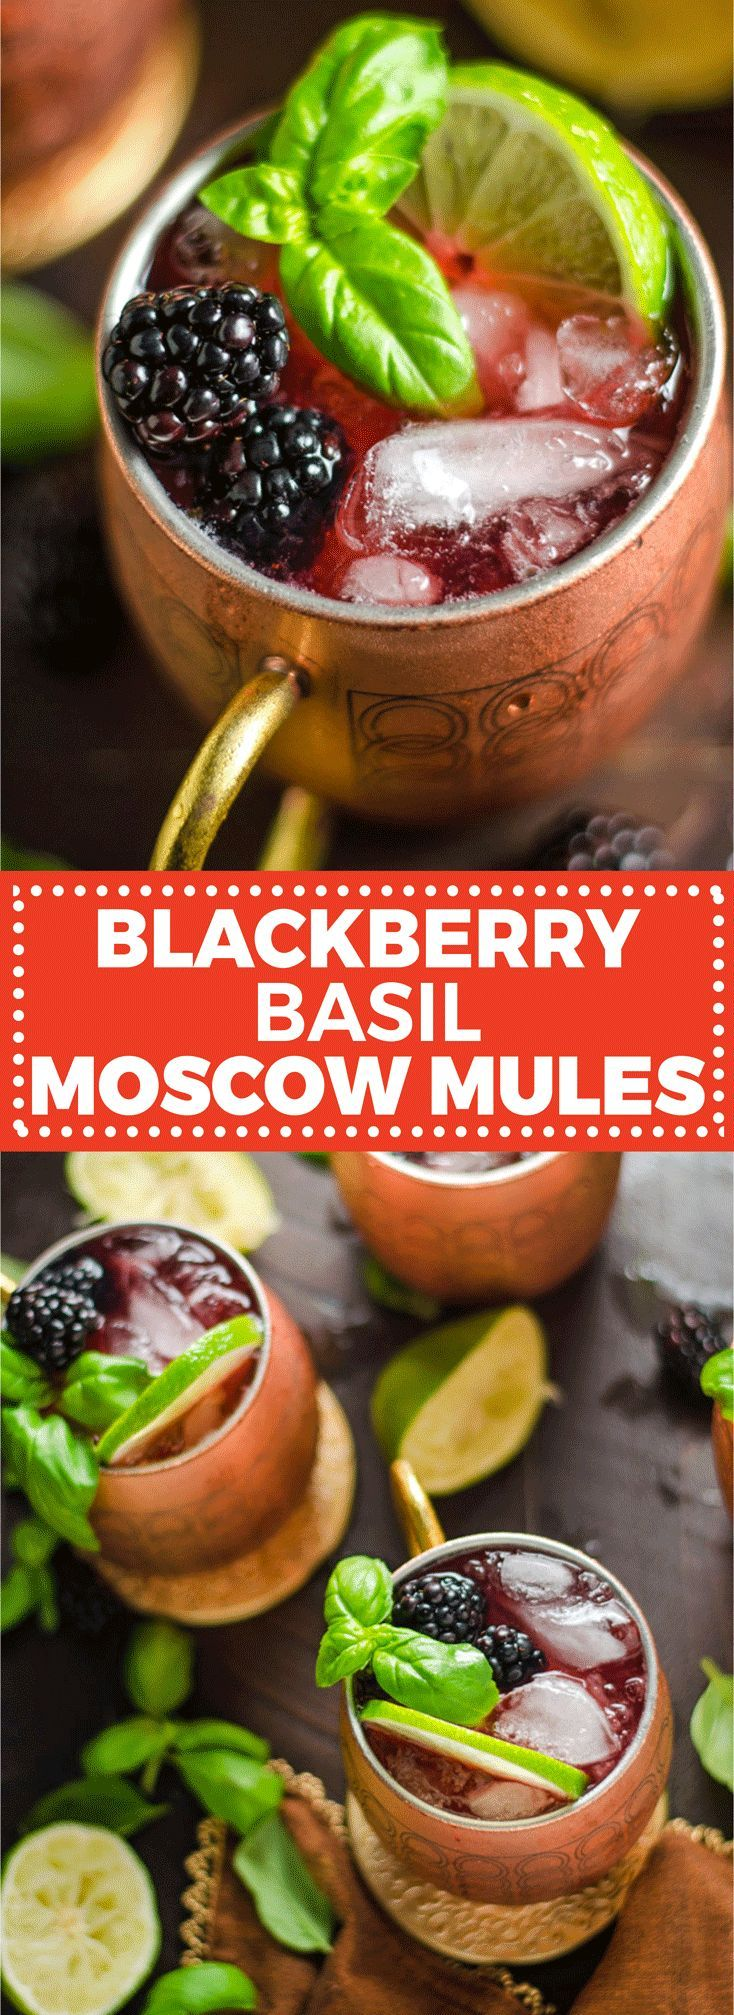 Blackberry Basil Moscow Mules. If you're a Moscow Mule fan, you're going to love this vibrant, simple spin on the popular cocktail! | http://hostthetoast.com